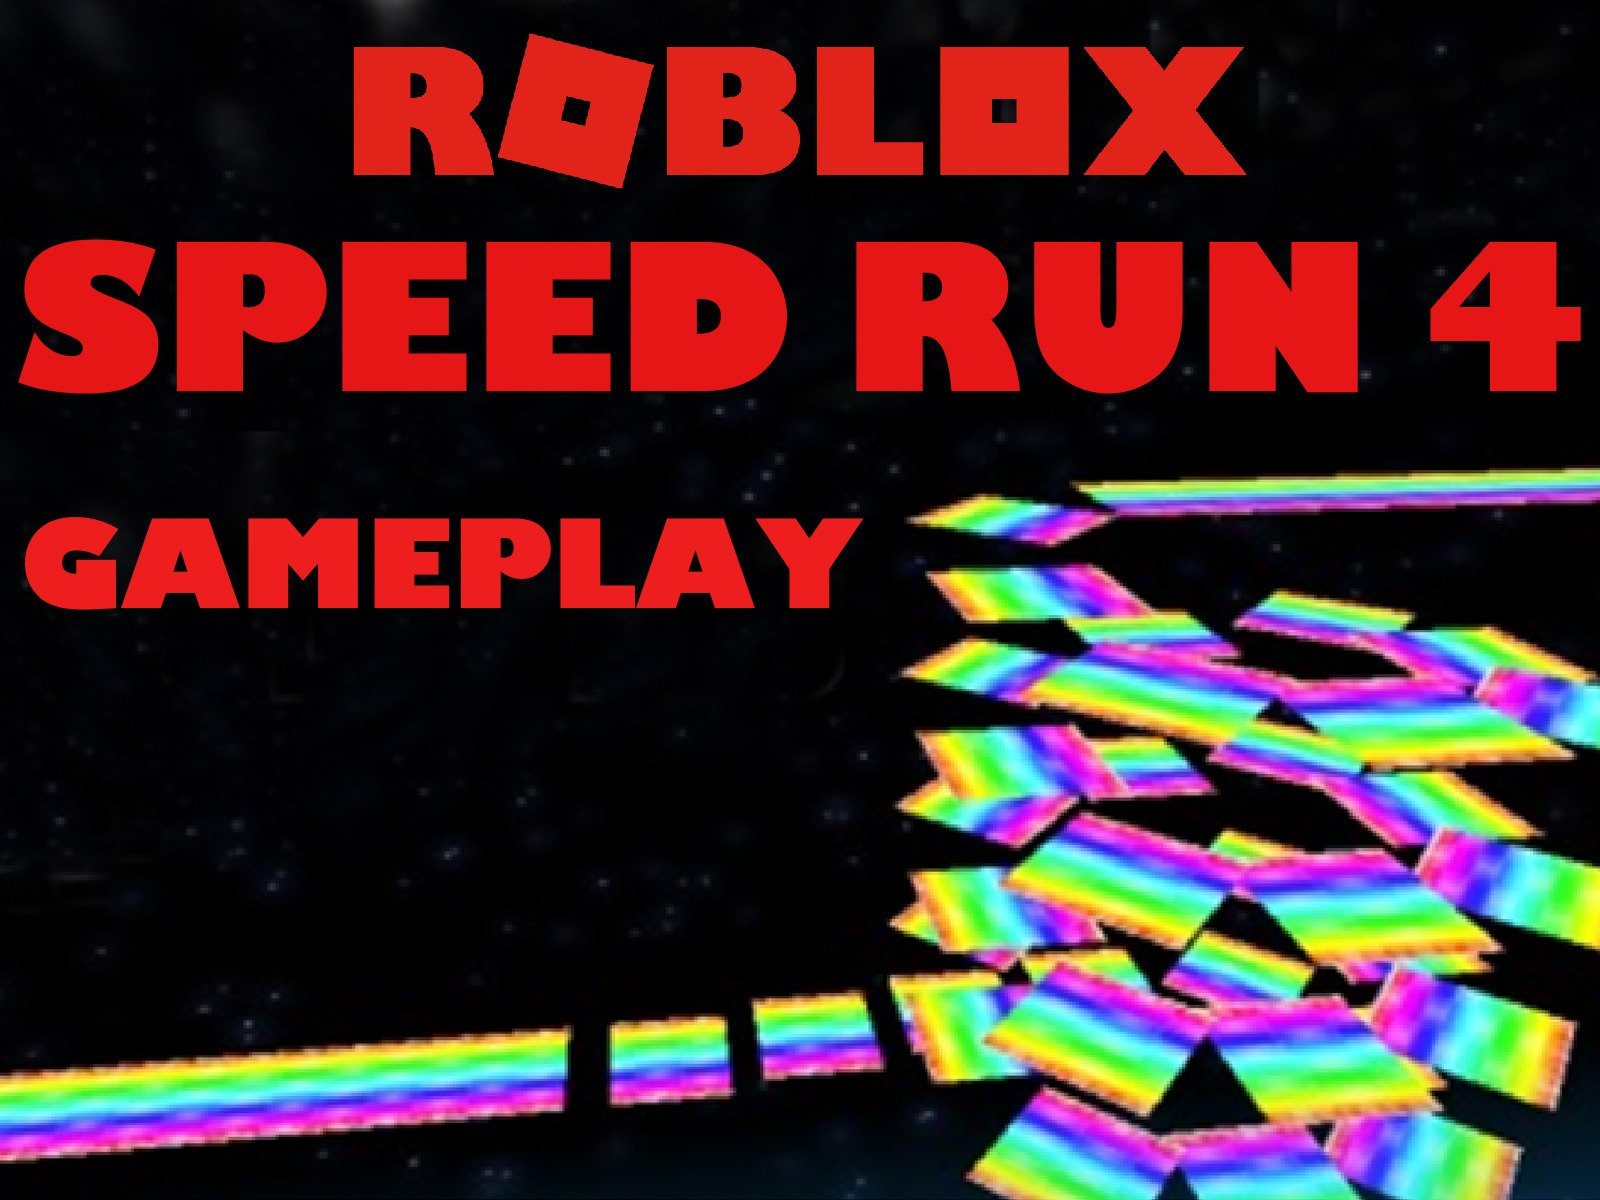 Clip: Roblox Speed Run 4 Gameplay - Season 1